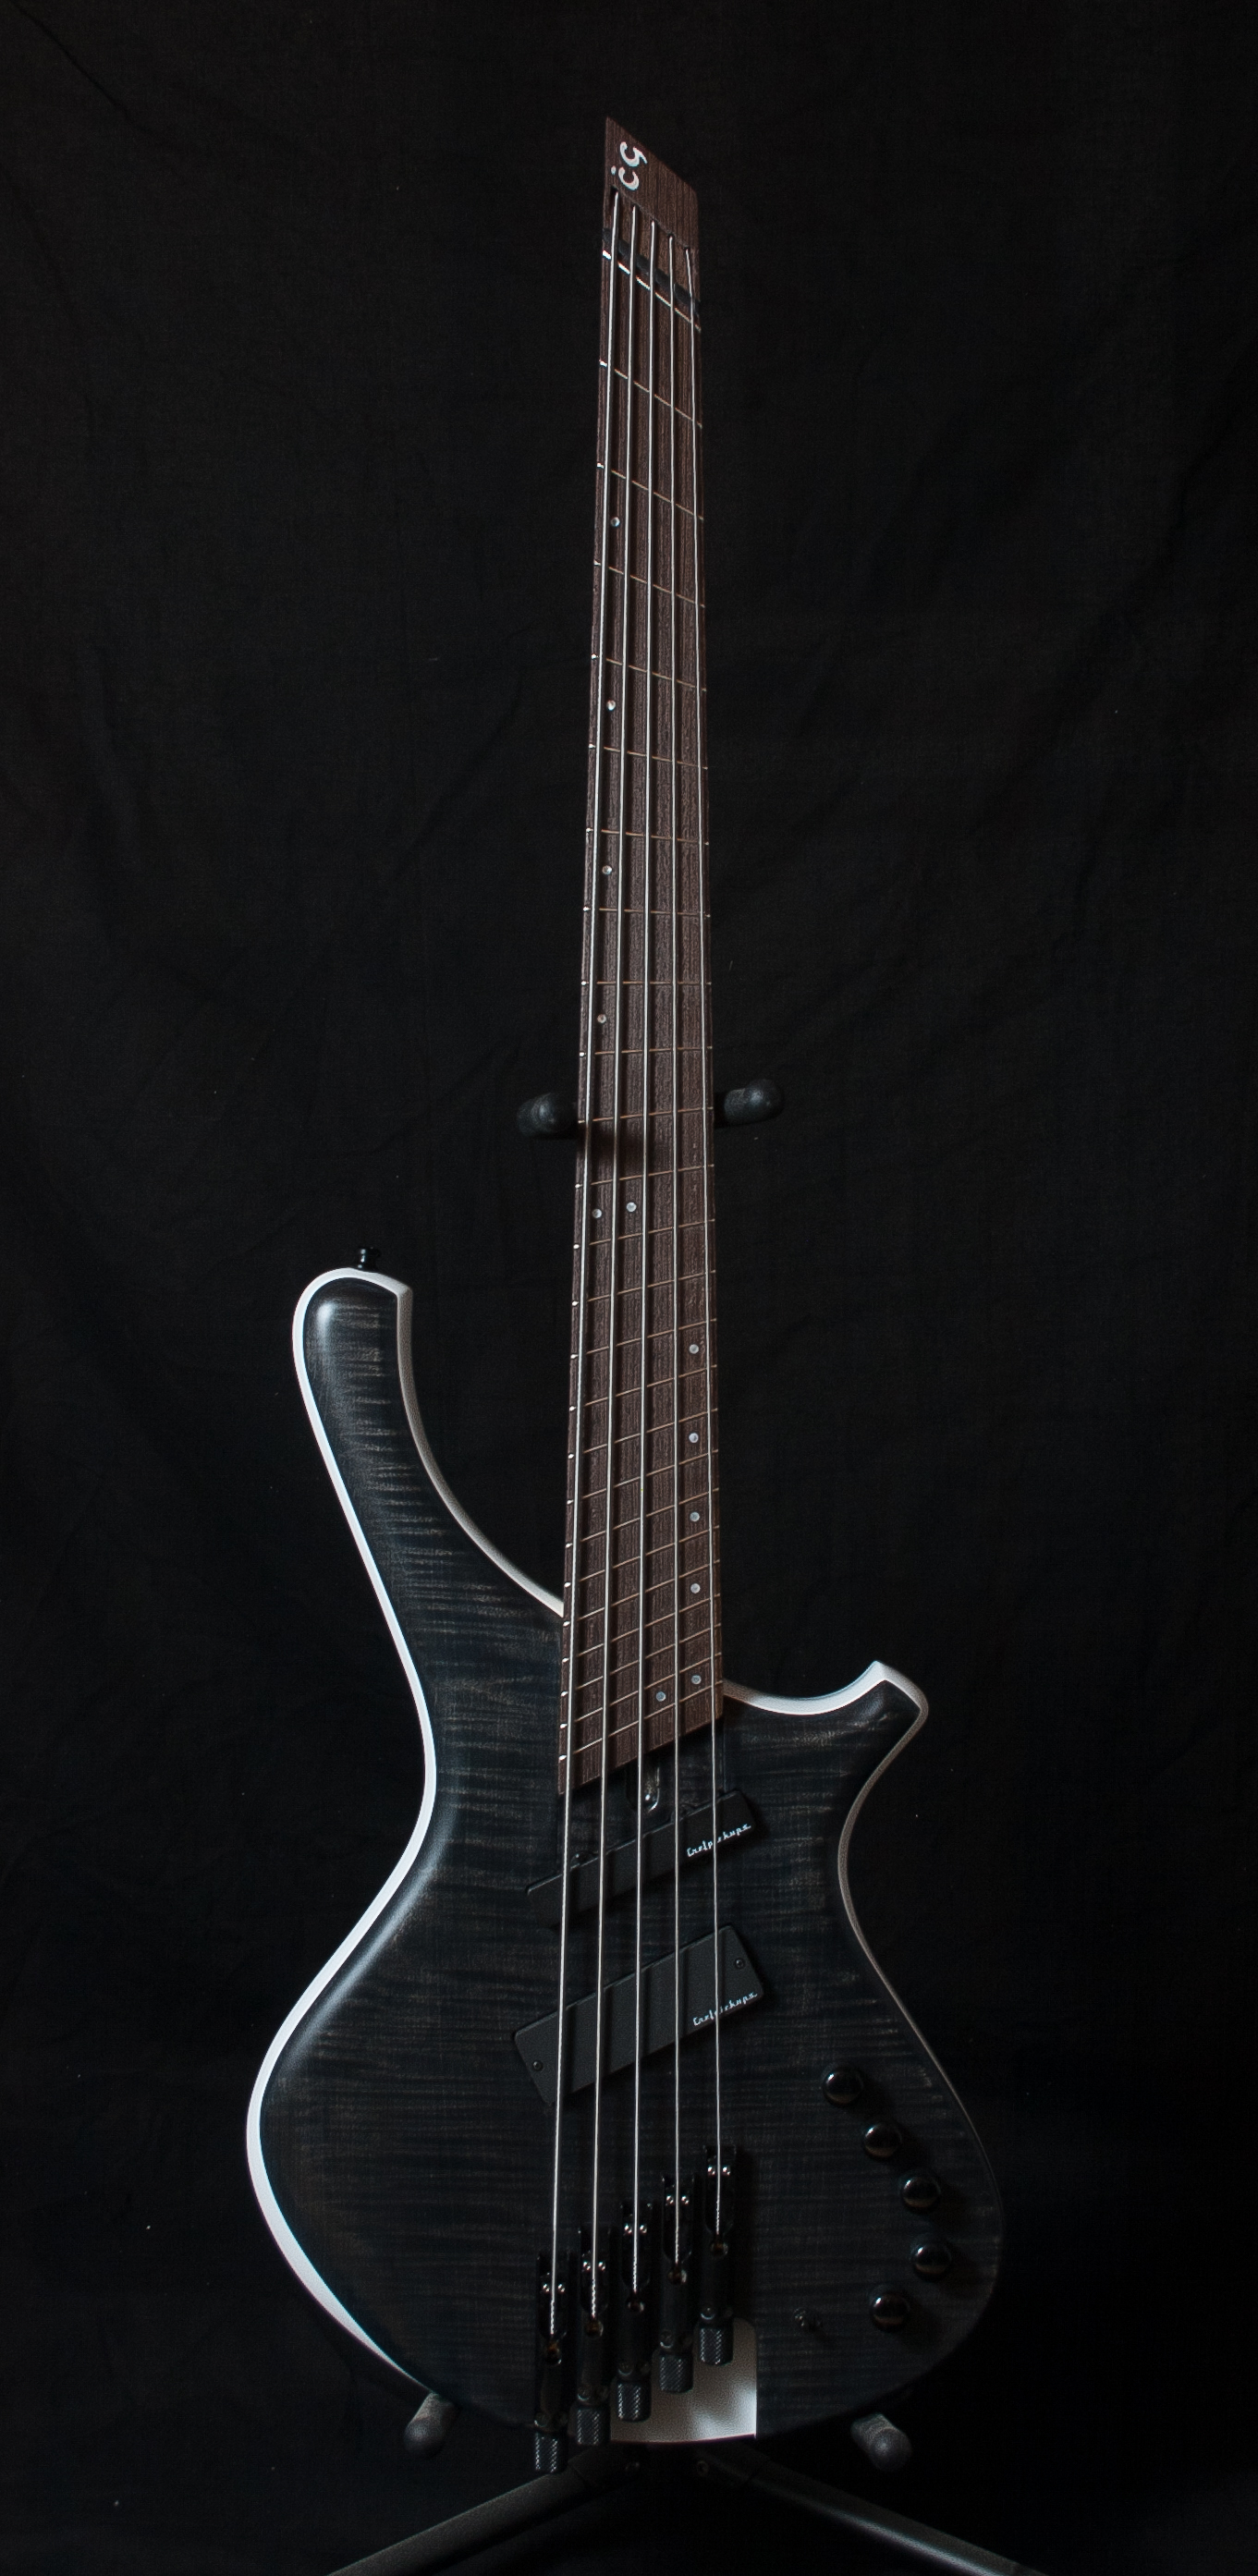 [LUTHIER] CG Lutherie - Page 6 K1dxp